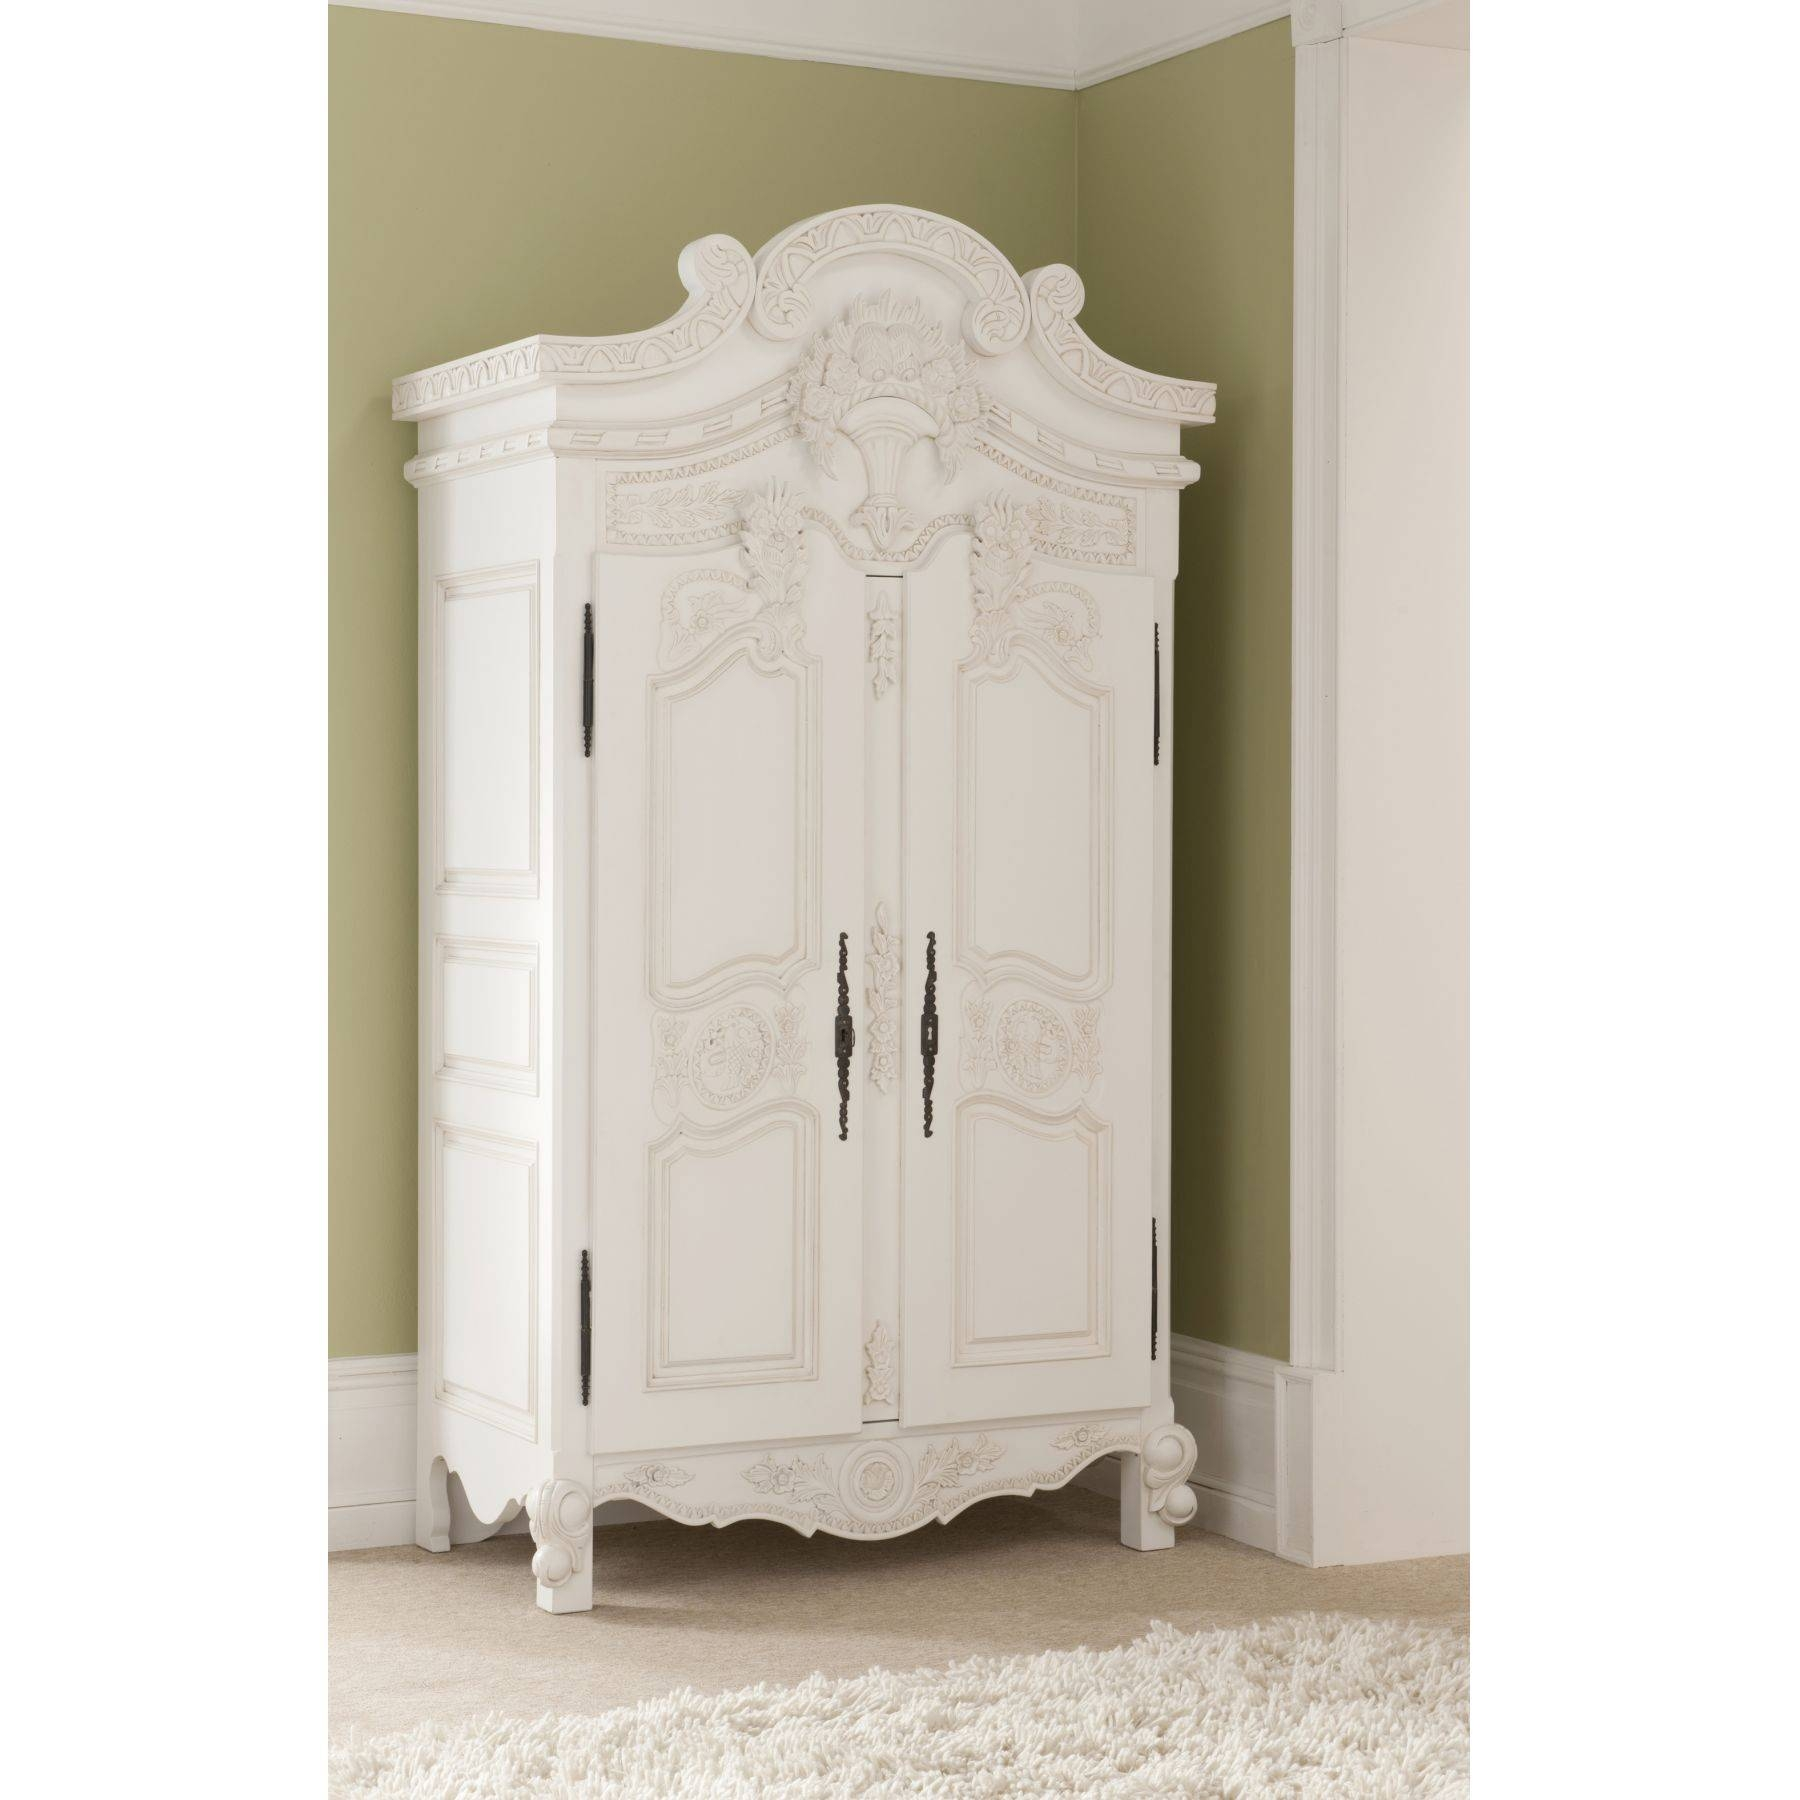 Rococo Antique French Wardrobe A Stunning Addition To Our Shabby regarding Large Shabby Chic Wardrobes (Image 8 of 15)